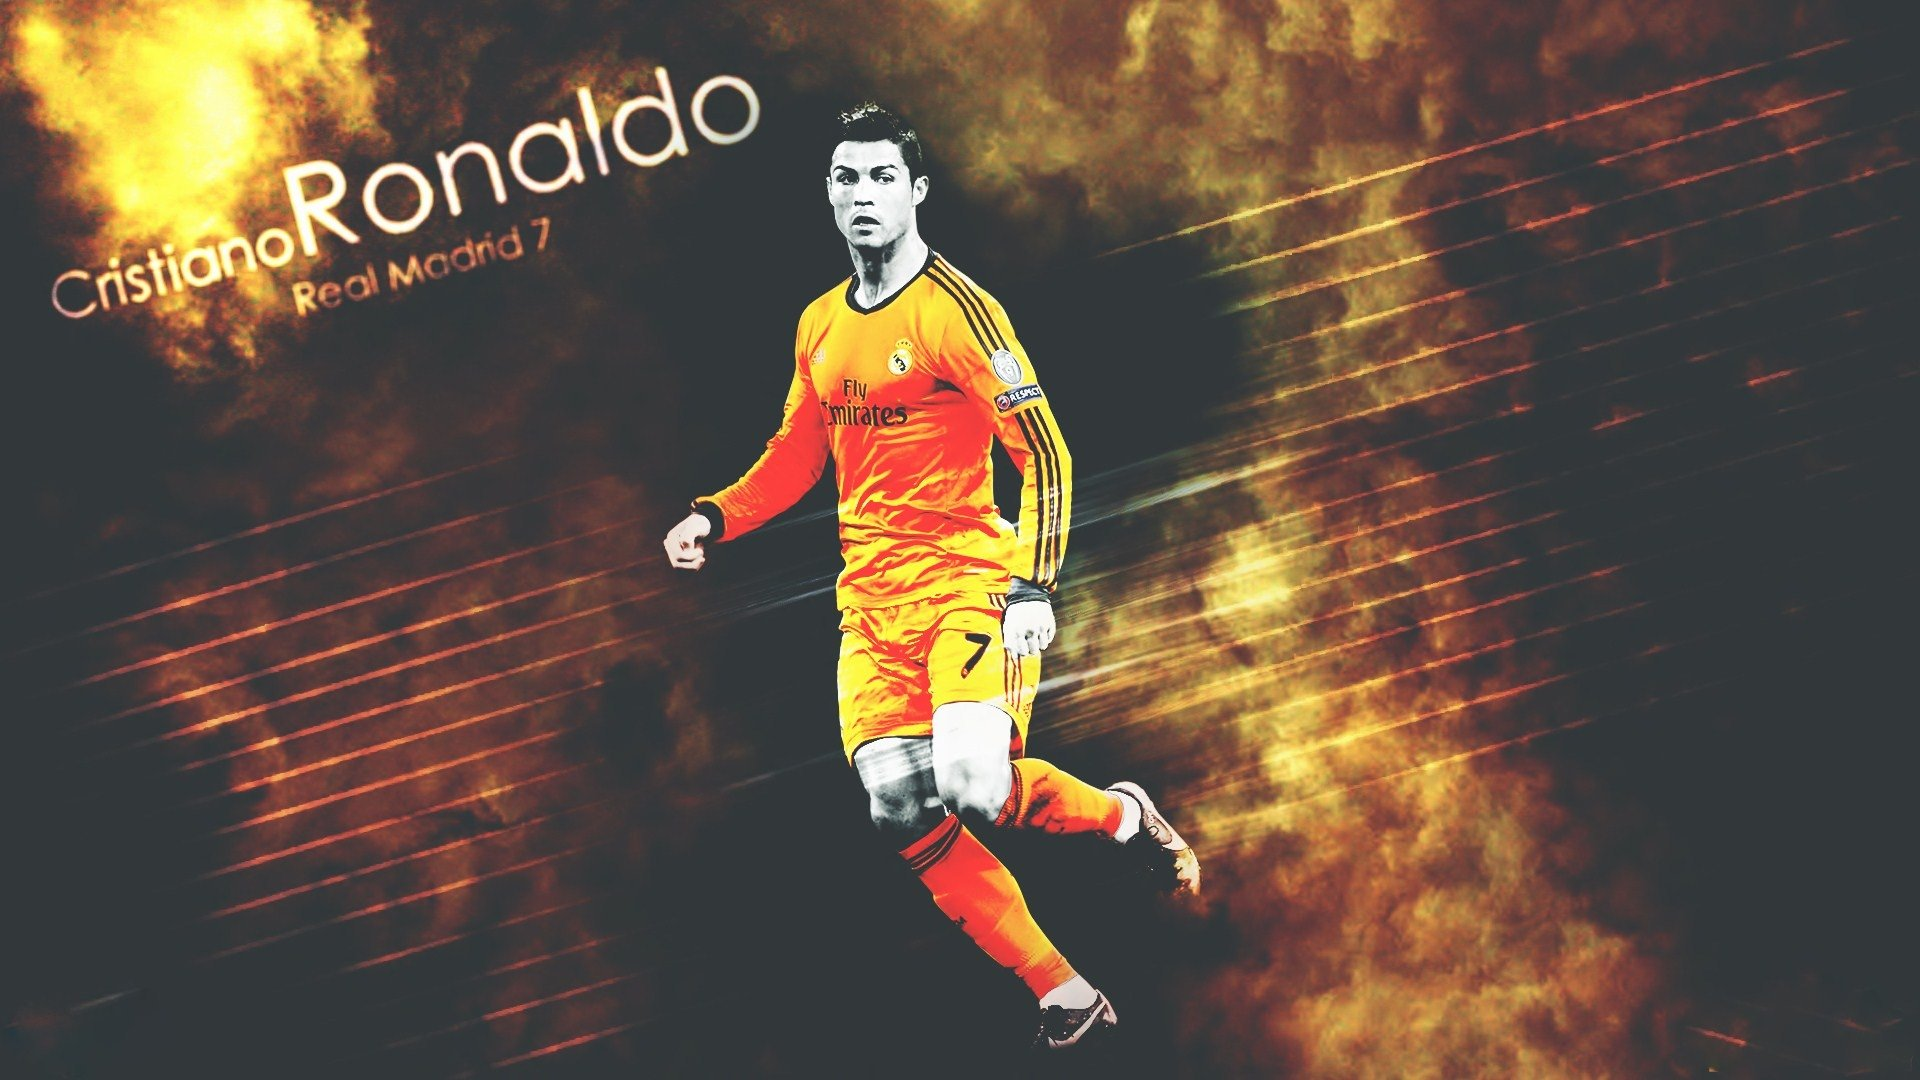 Sports - Cristiano Ronaldo  Real Madrid C.F. Wallpaper